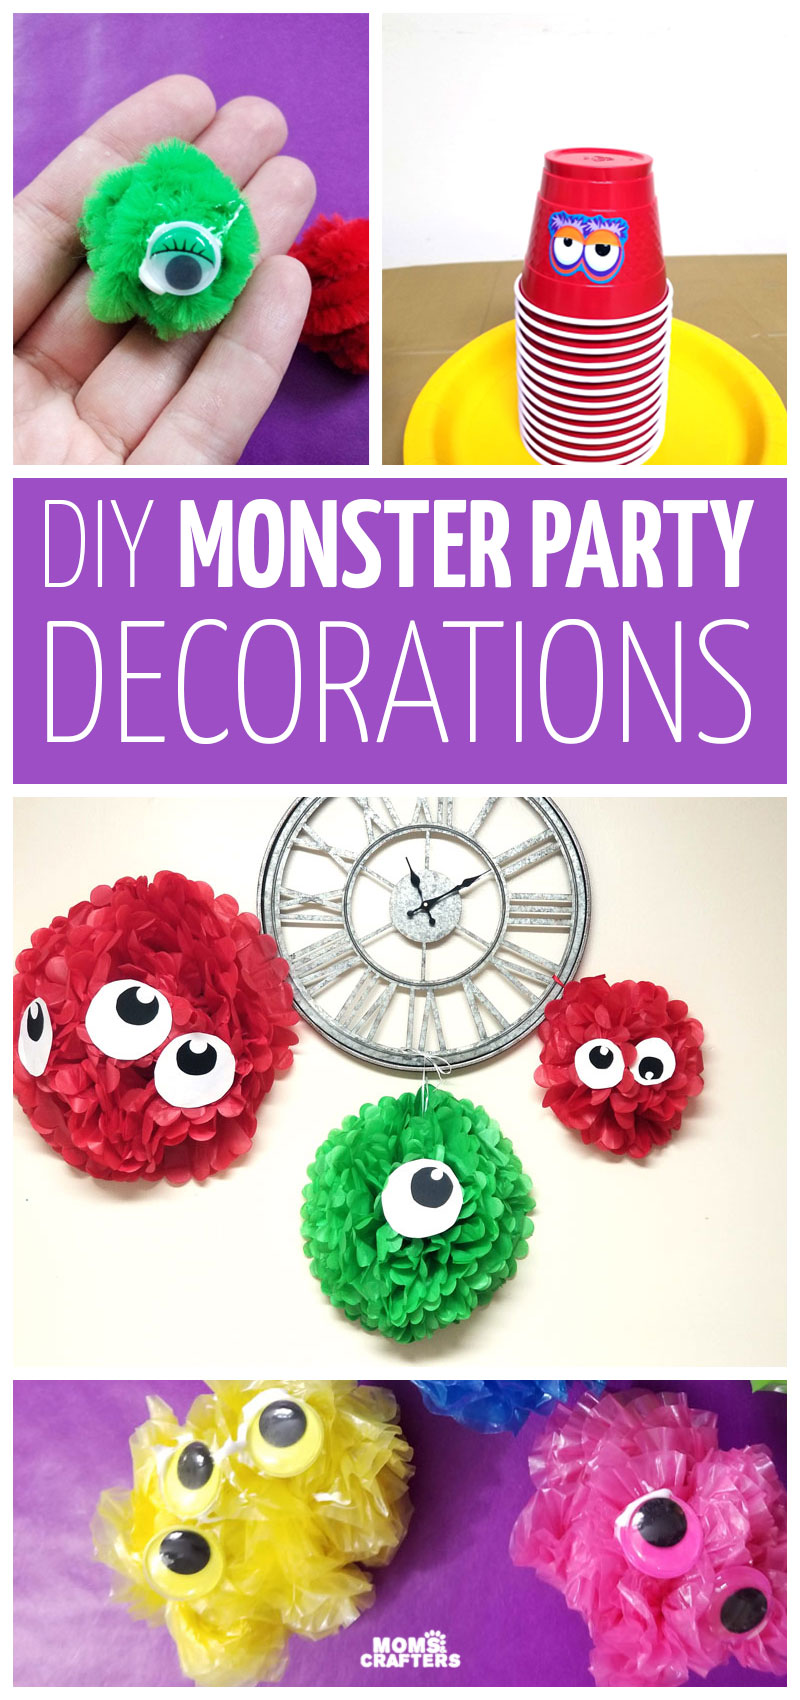 DIY monster party decorations that are easy to make - kids can help too! Such a fun theme for a three year old birthday party idea.